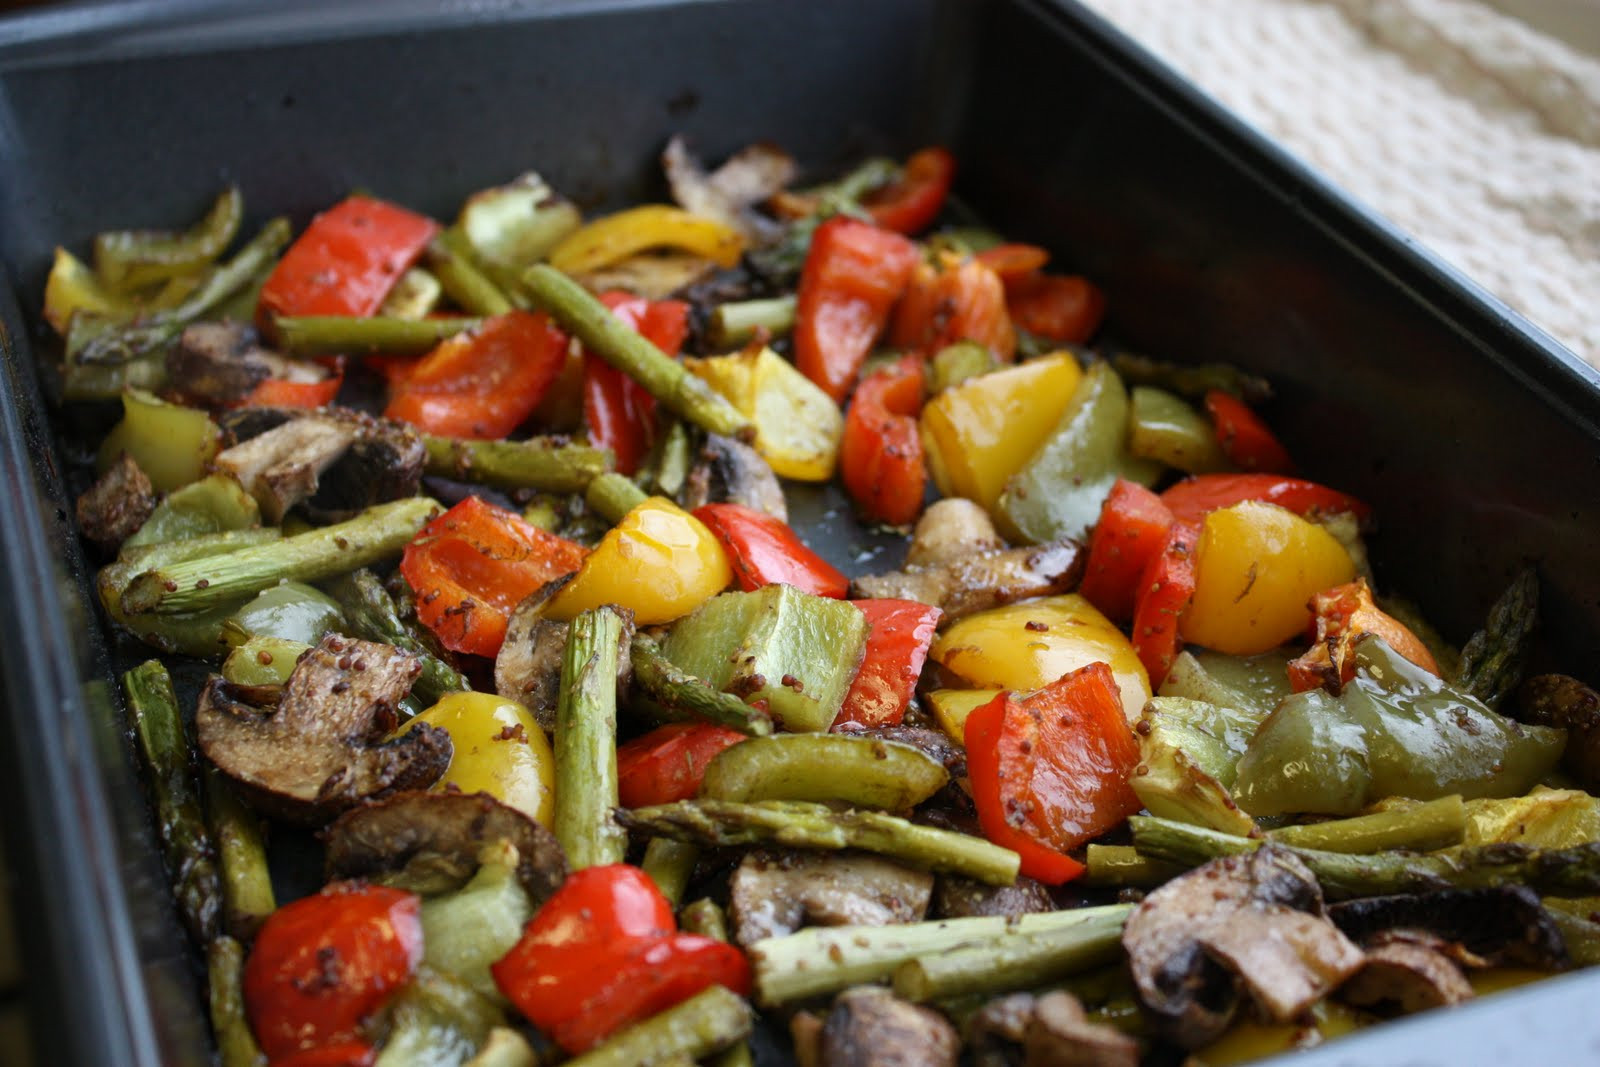 Balsamic Roasted Vegetables  Balsamic Dijon Roasted Ve ables Get f Your Tush and